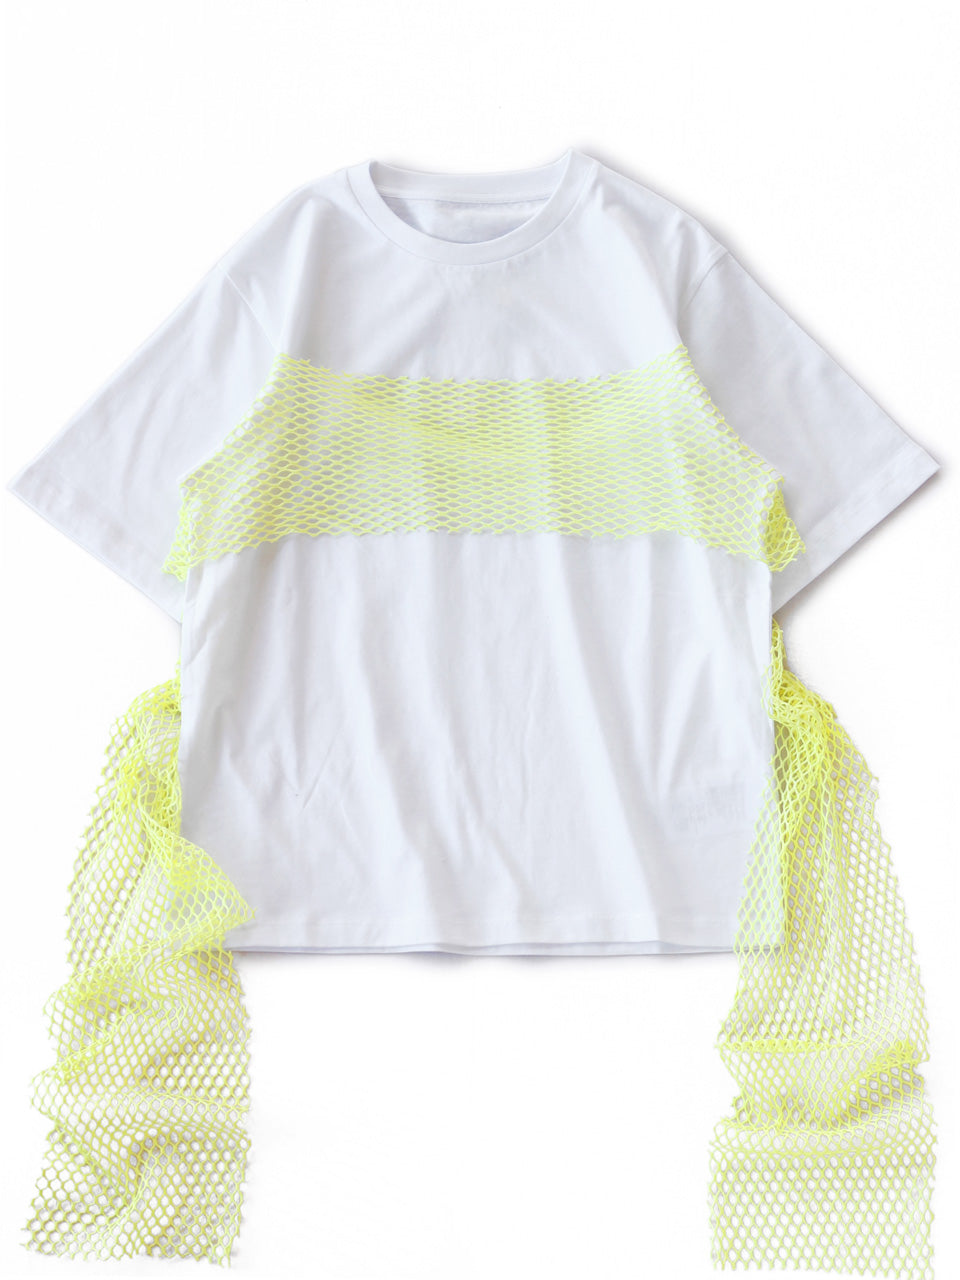 Basic Jersey Tee (white/pale lime)